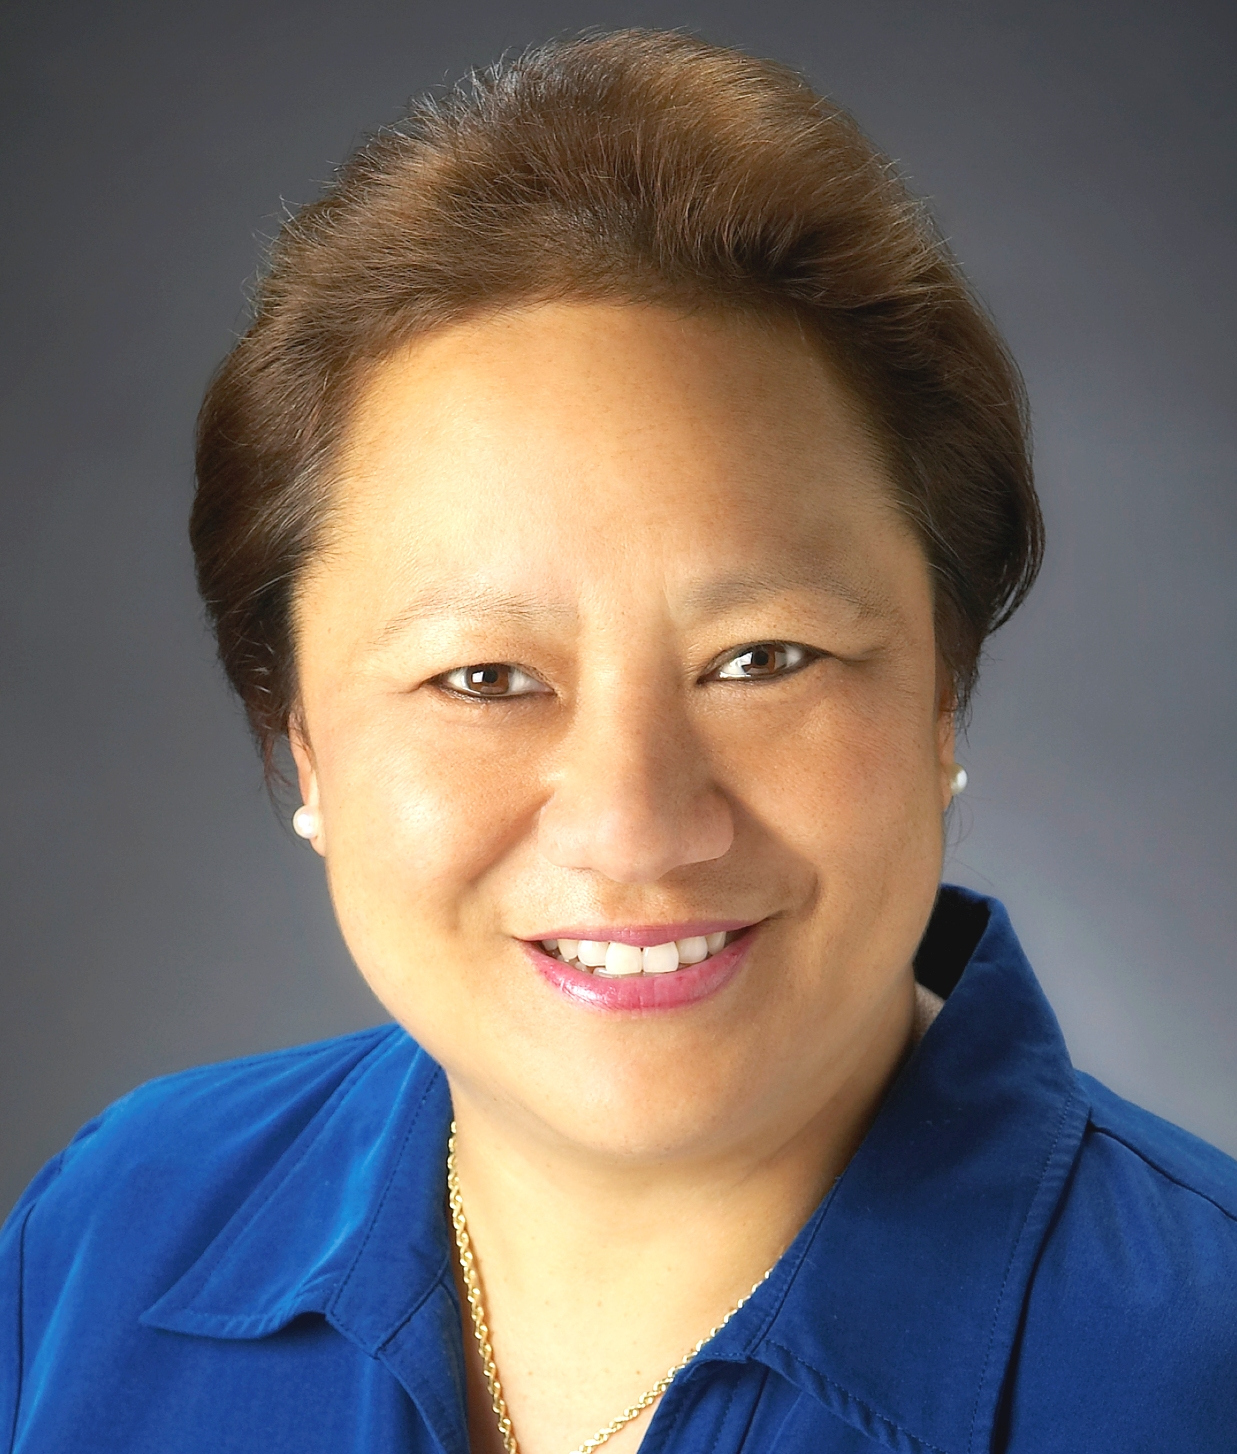 Florence L. K. Kong Kee